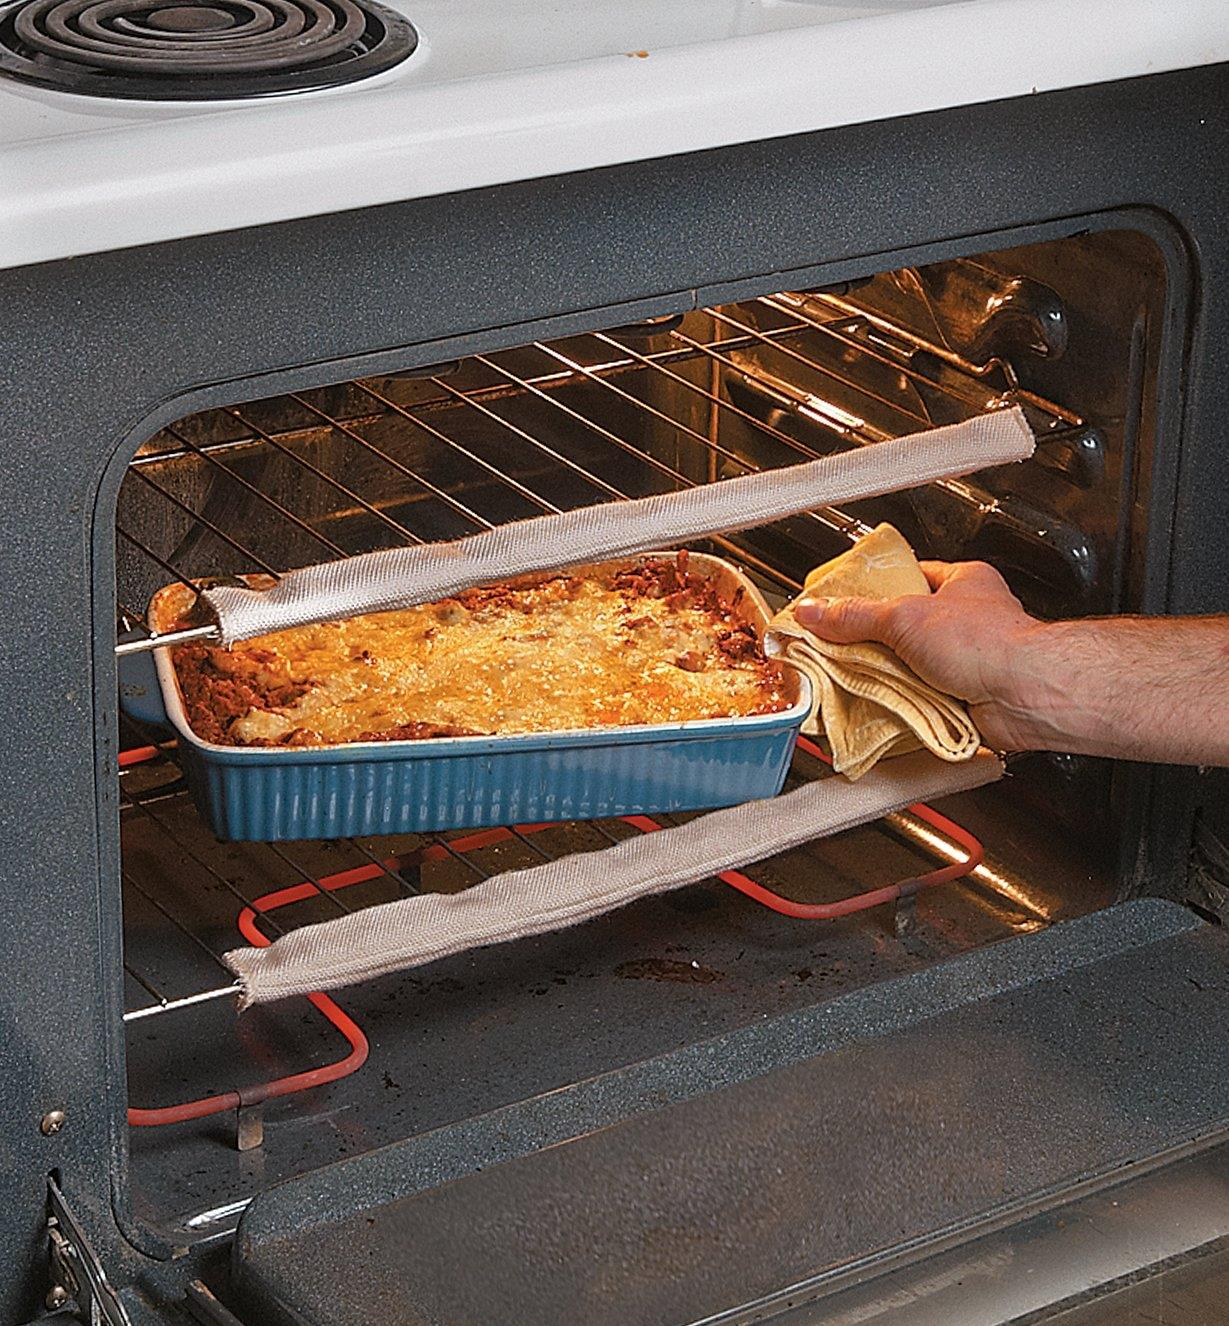 Removing a casserole from an oven with oven guards attached to the racks